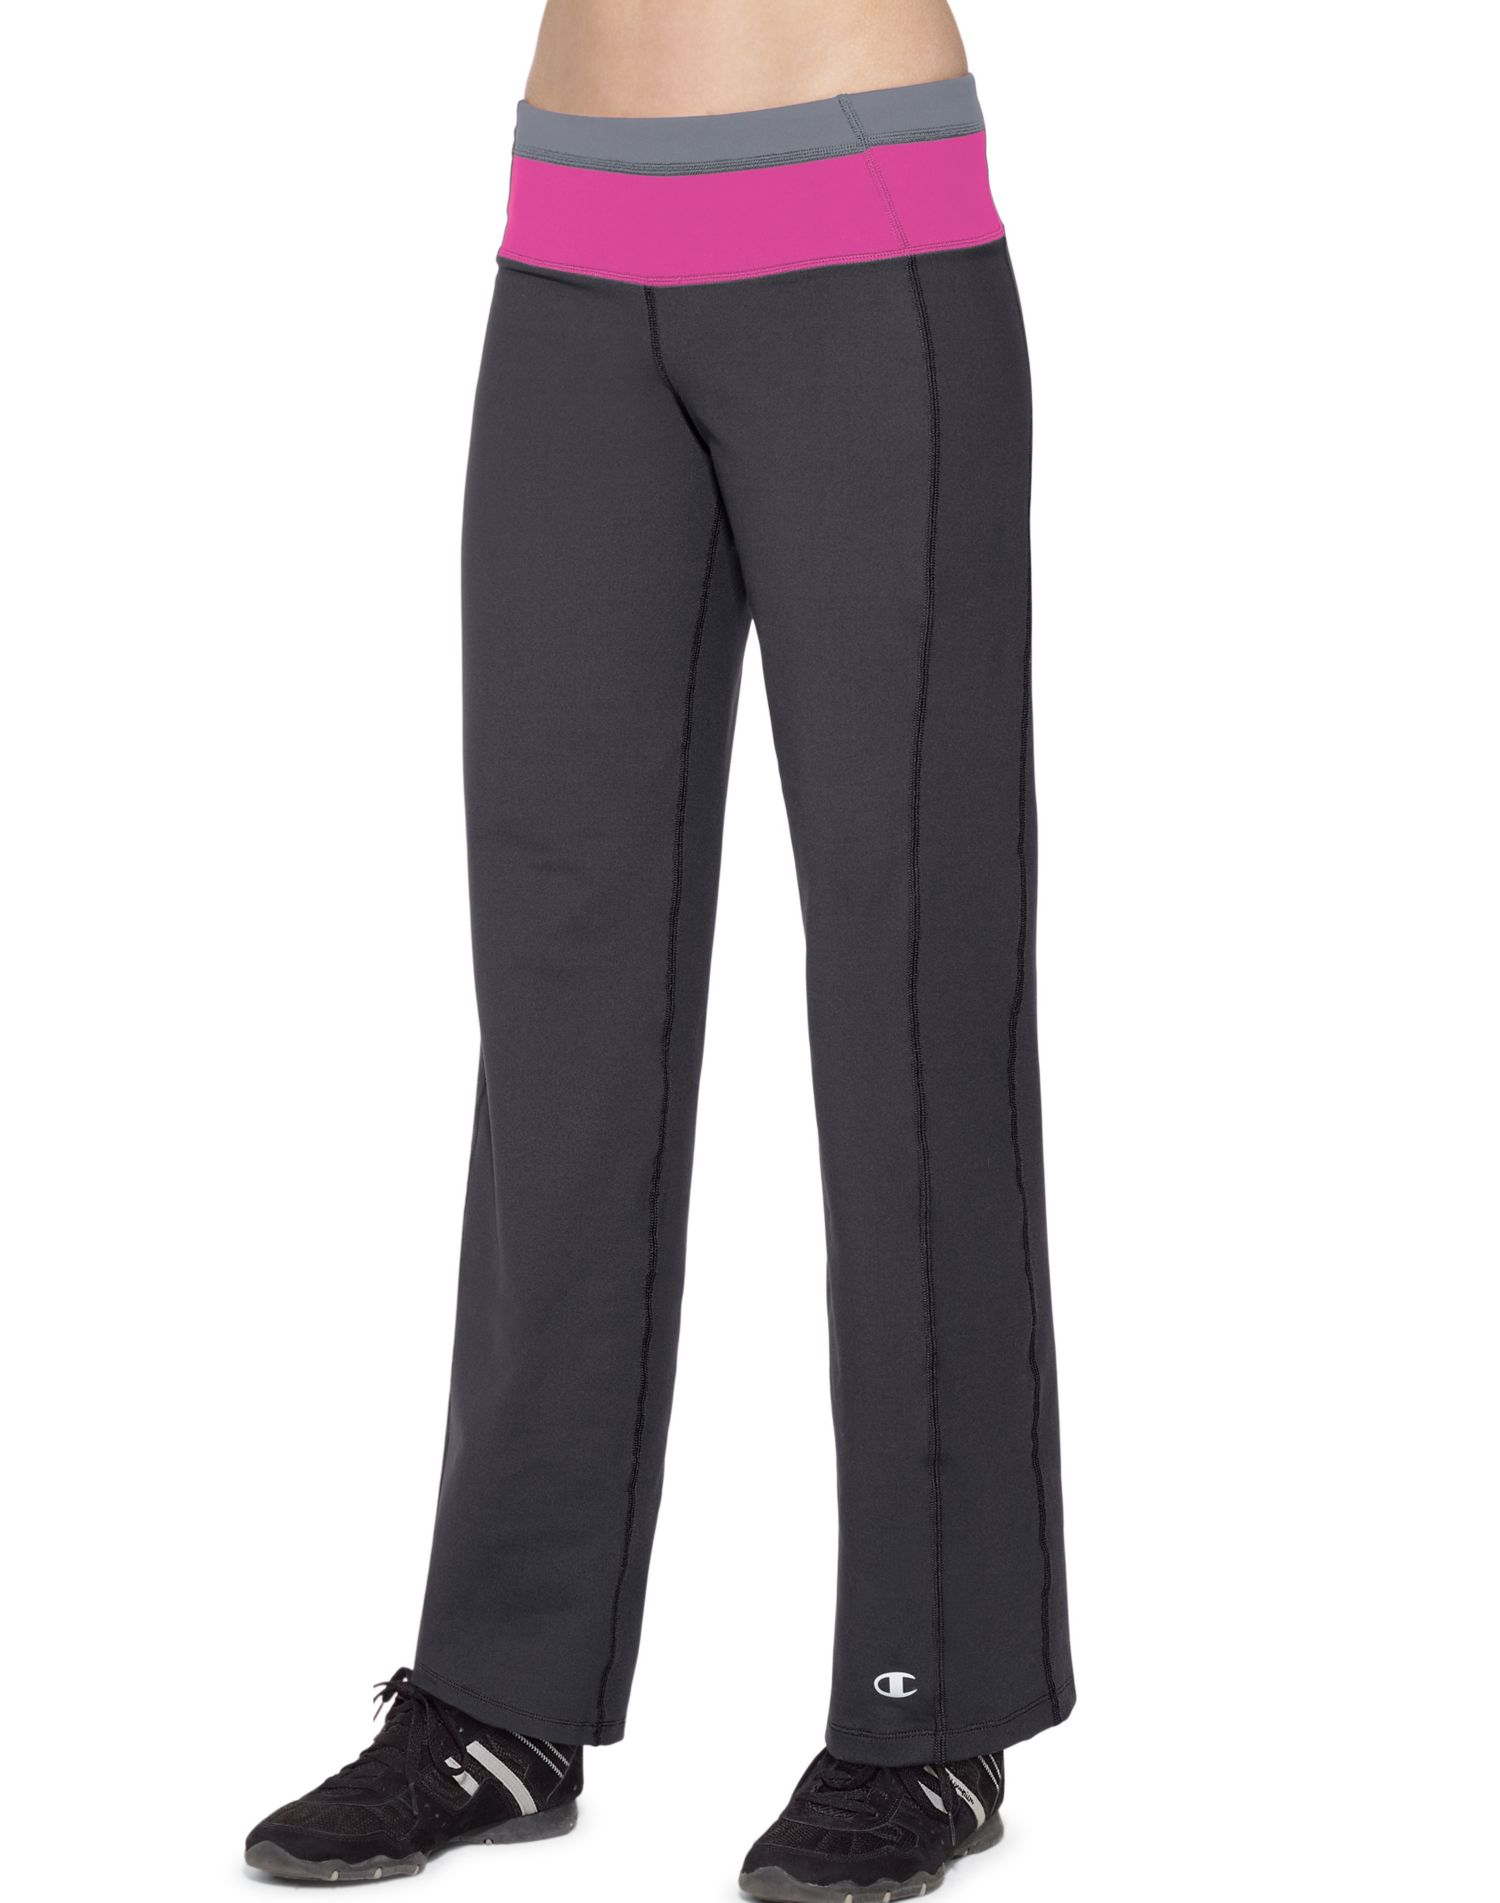 Unique Semifitted Pants Provide All The Right Fit In All The Right Places PowerFlex Technology Stretches To Move With You PowerTrain Core Performance Double Dry Moisture Control Helps Keep You Cooler And Drier UV Protection Tagfree